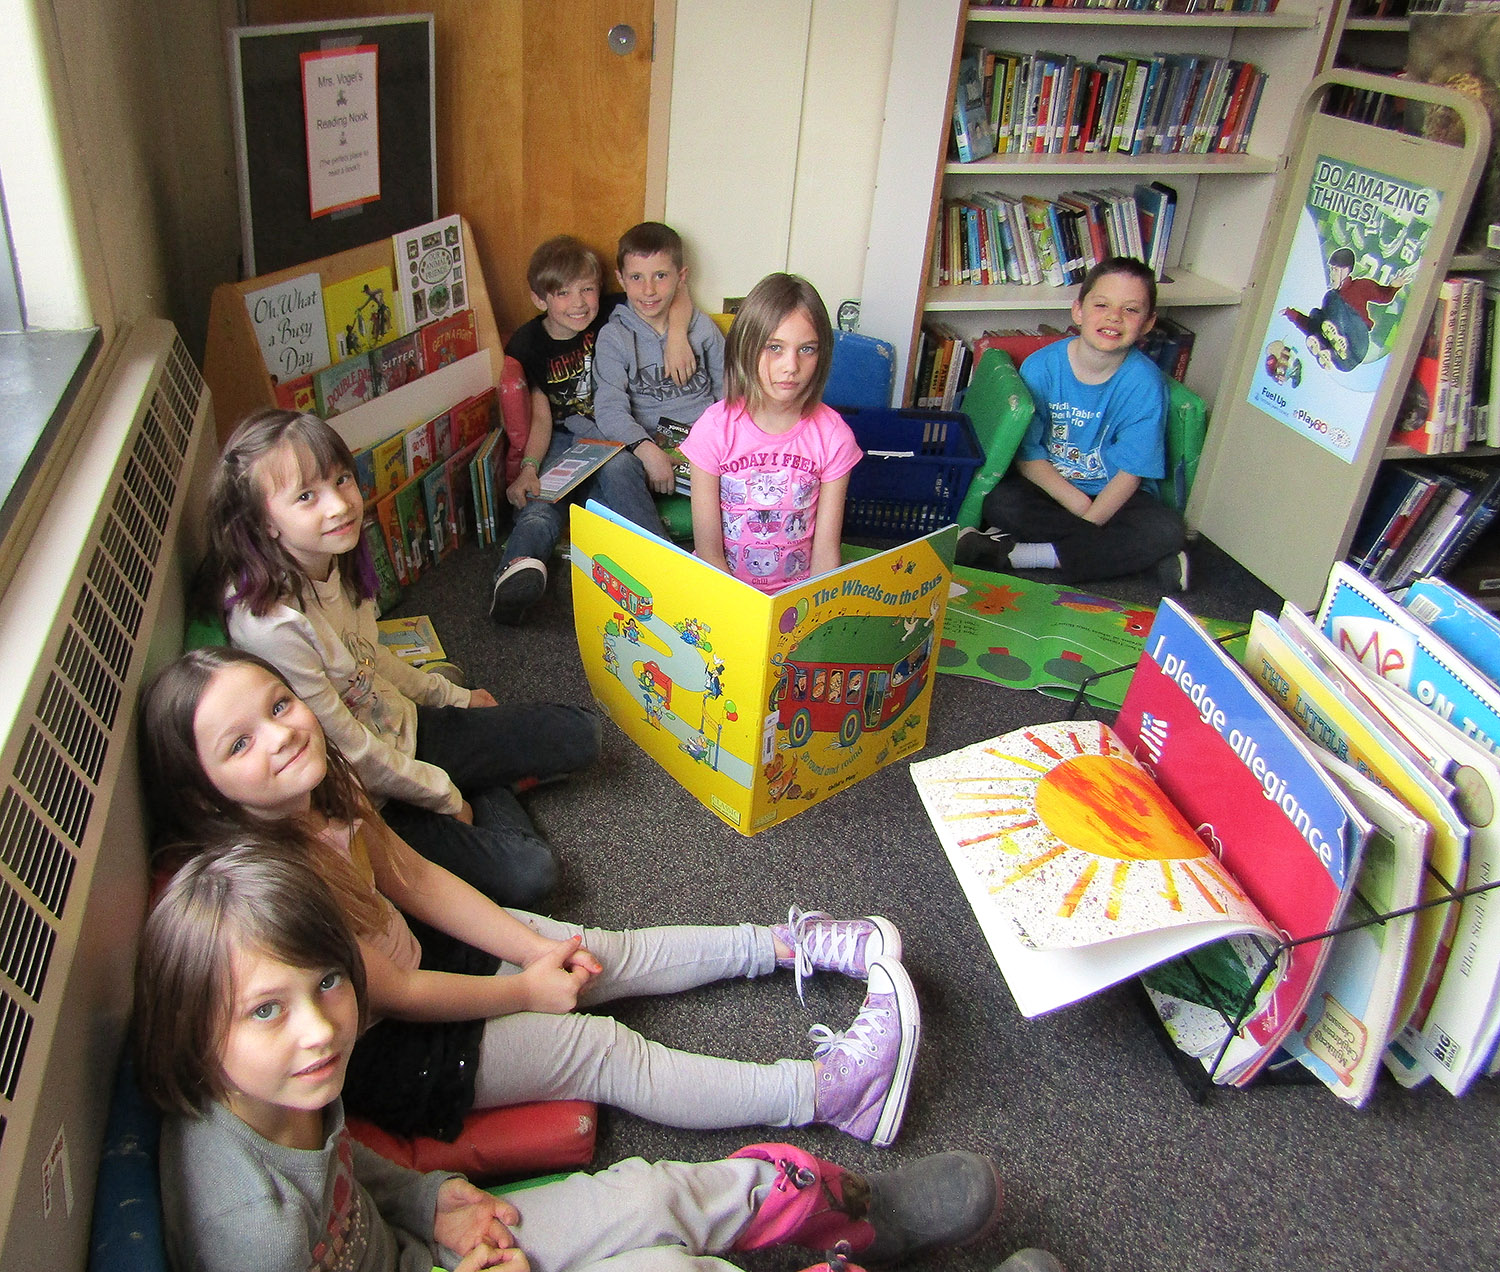 Students in the Reading Nook